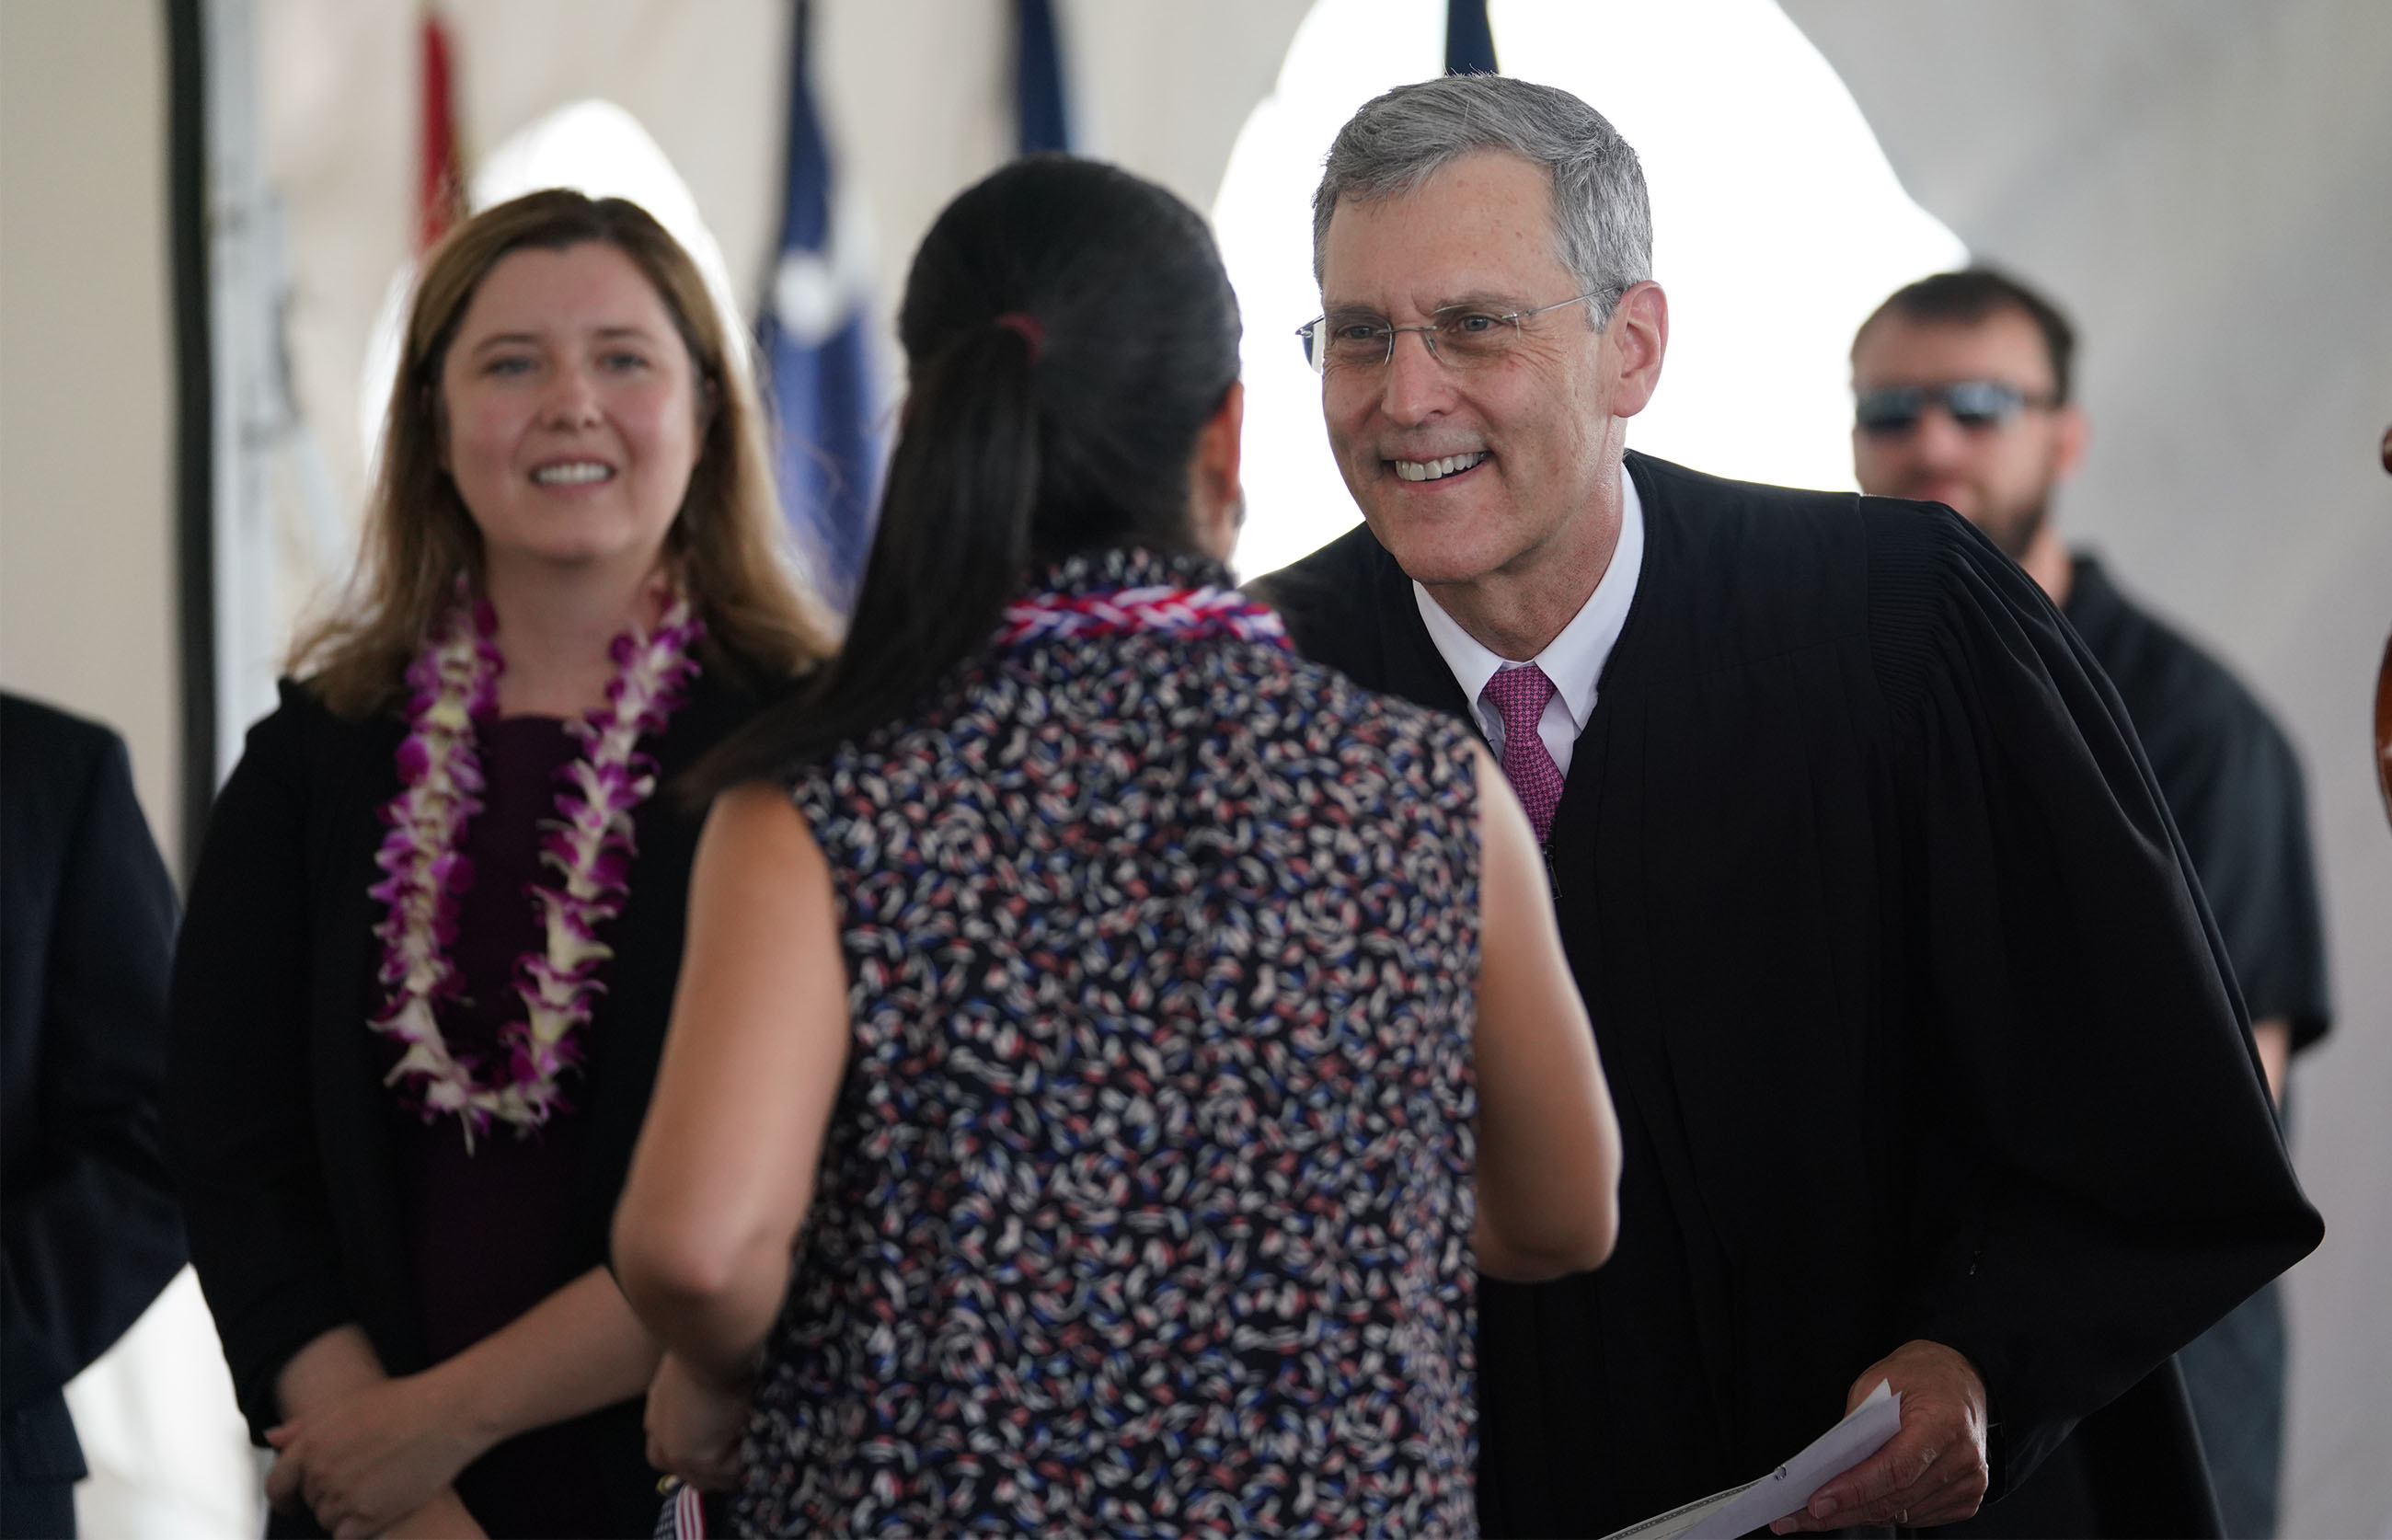 <p>U.S. District Court Judge J. Michael Seabright and Law Clerk Sara Haley greeted the participants. Seabright made welcoming remarks and administered the Oath of Allegiance.</p>